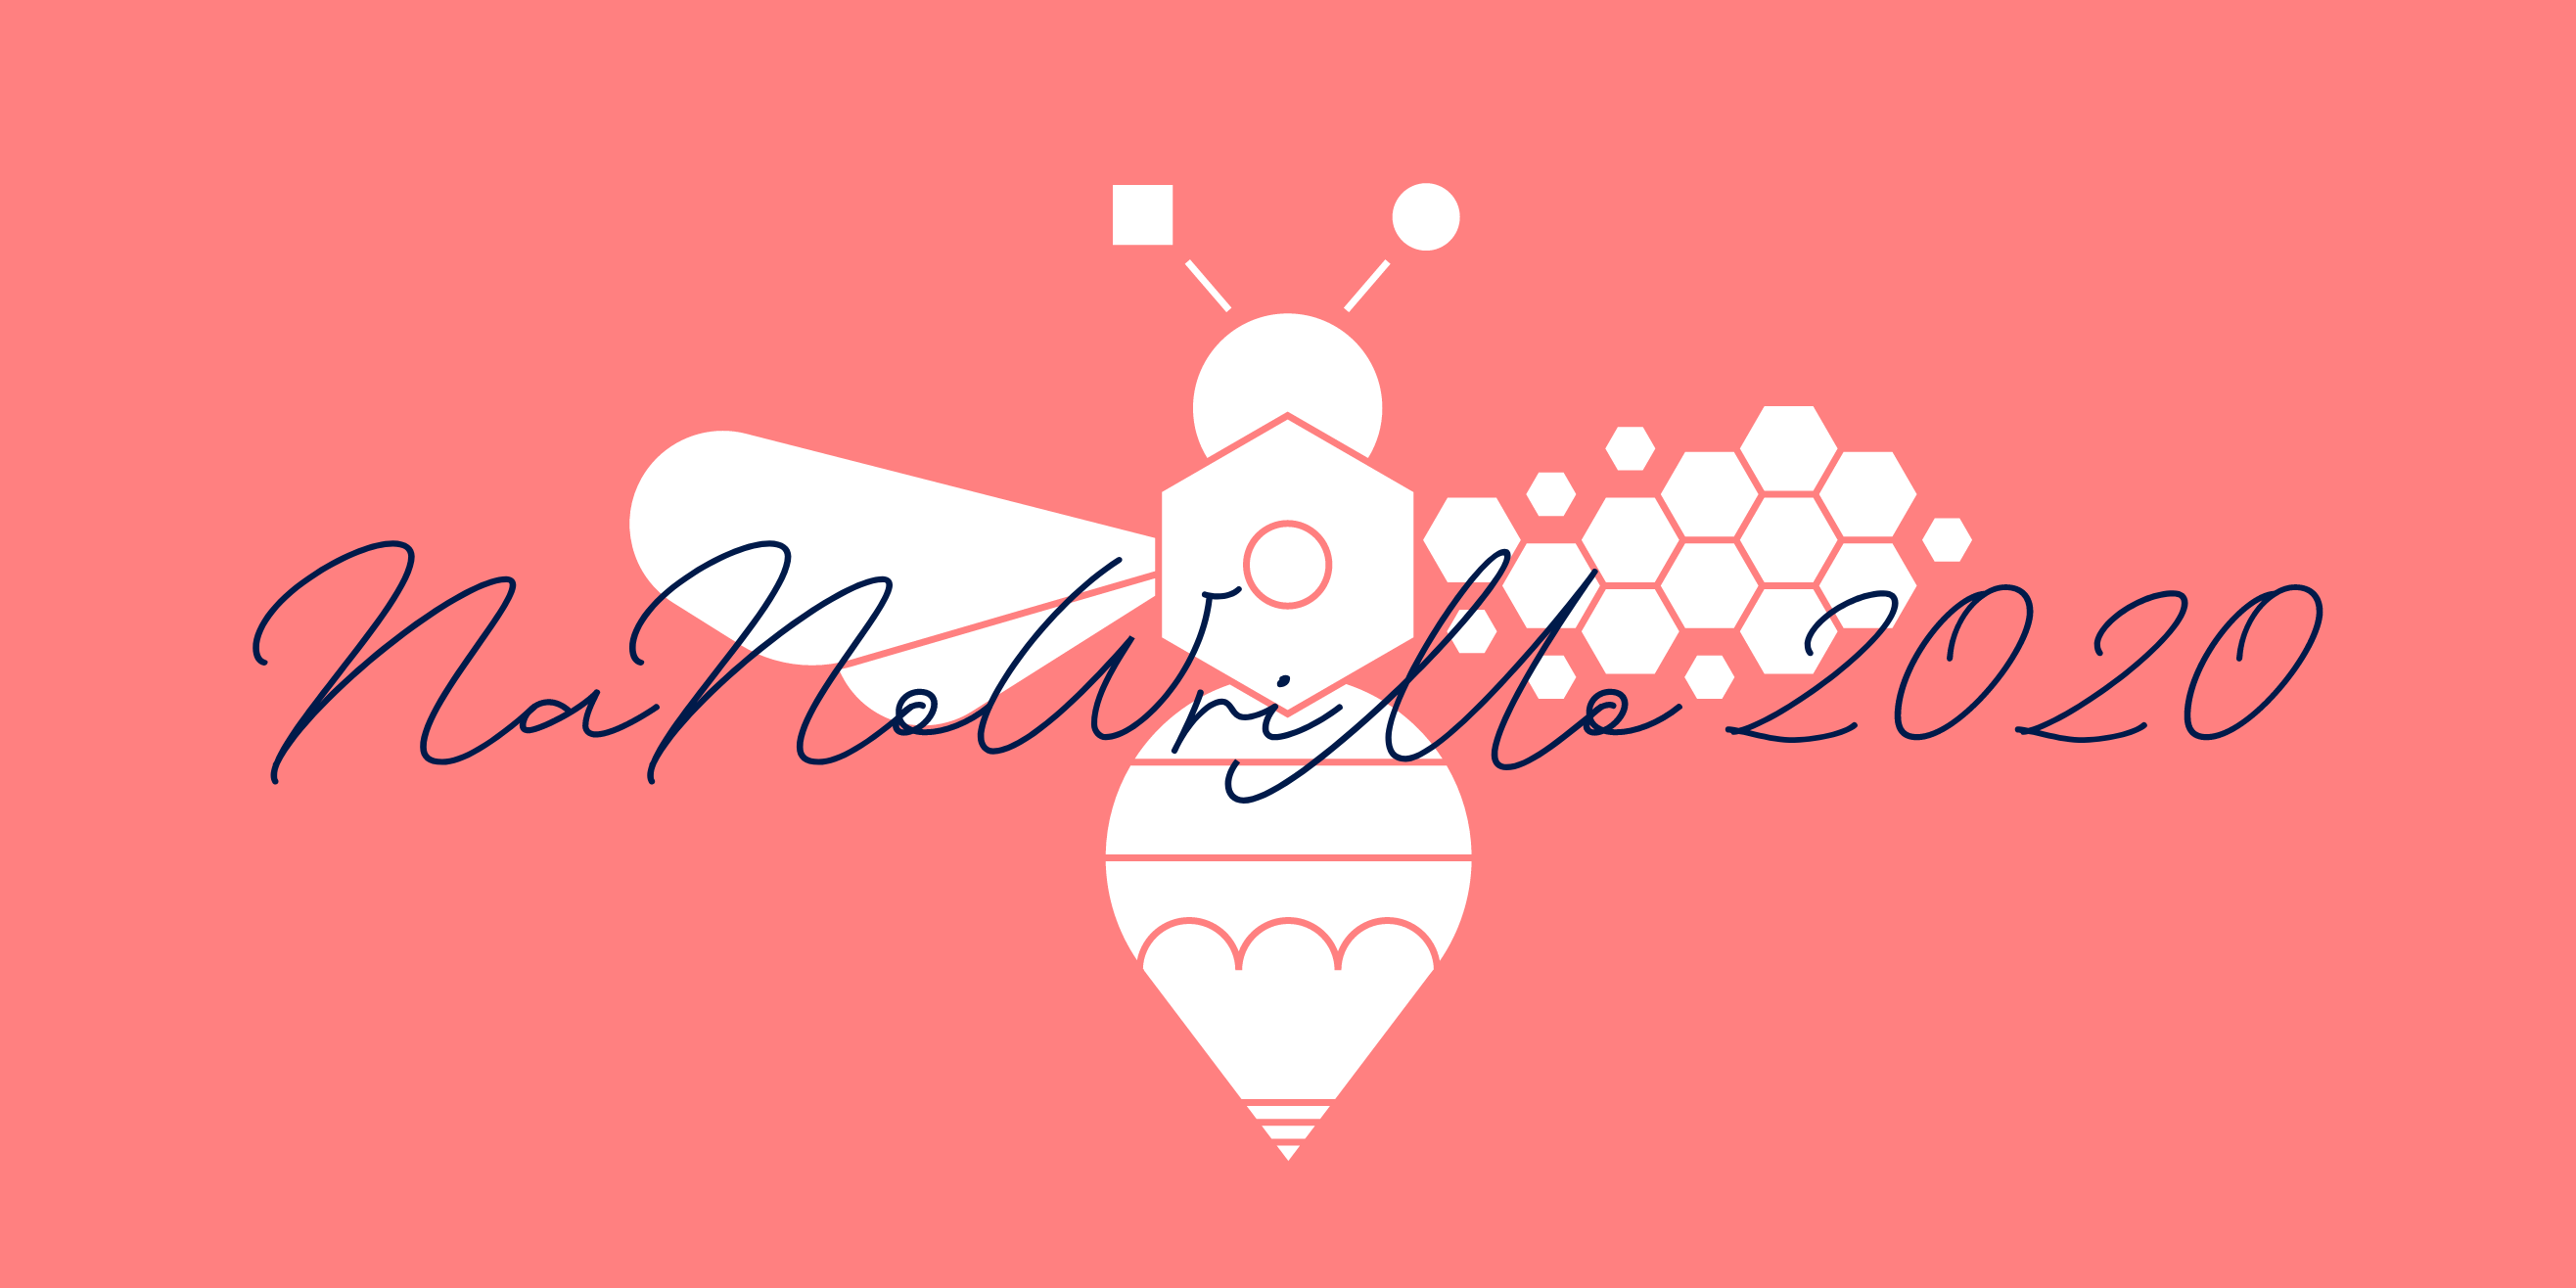 Manchester Writing Bee in white on pink backdrop with handwritten type saying NaNoWriMo 2020 in dark blue over it.